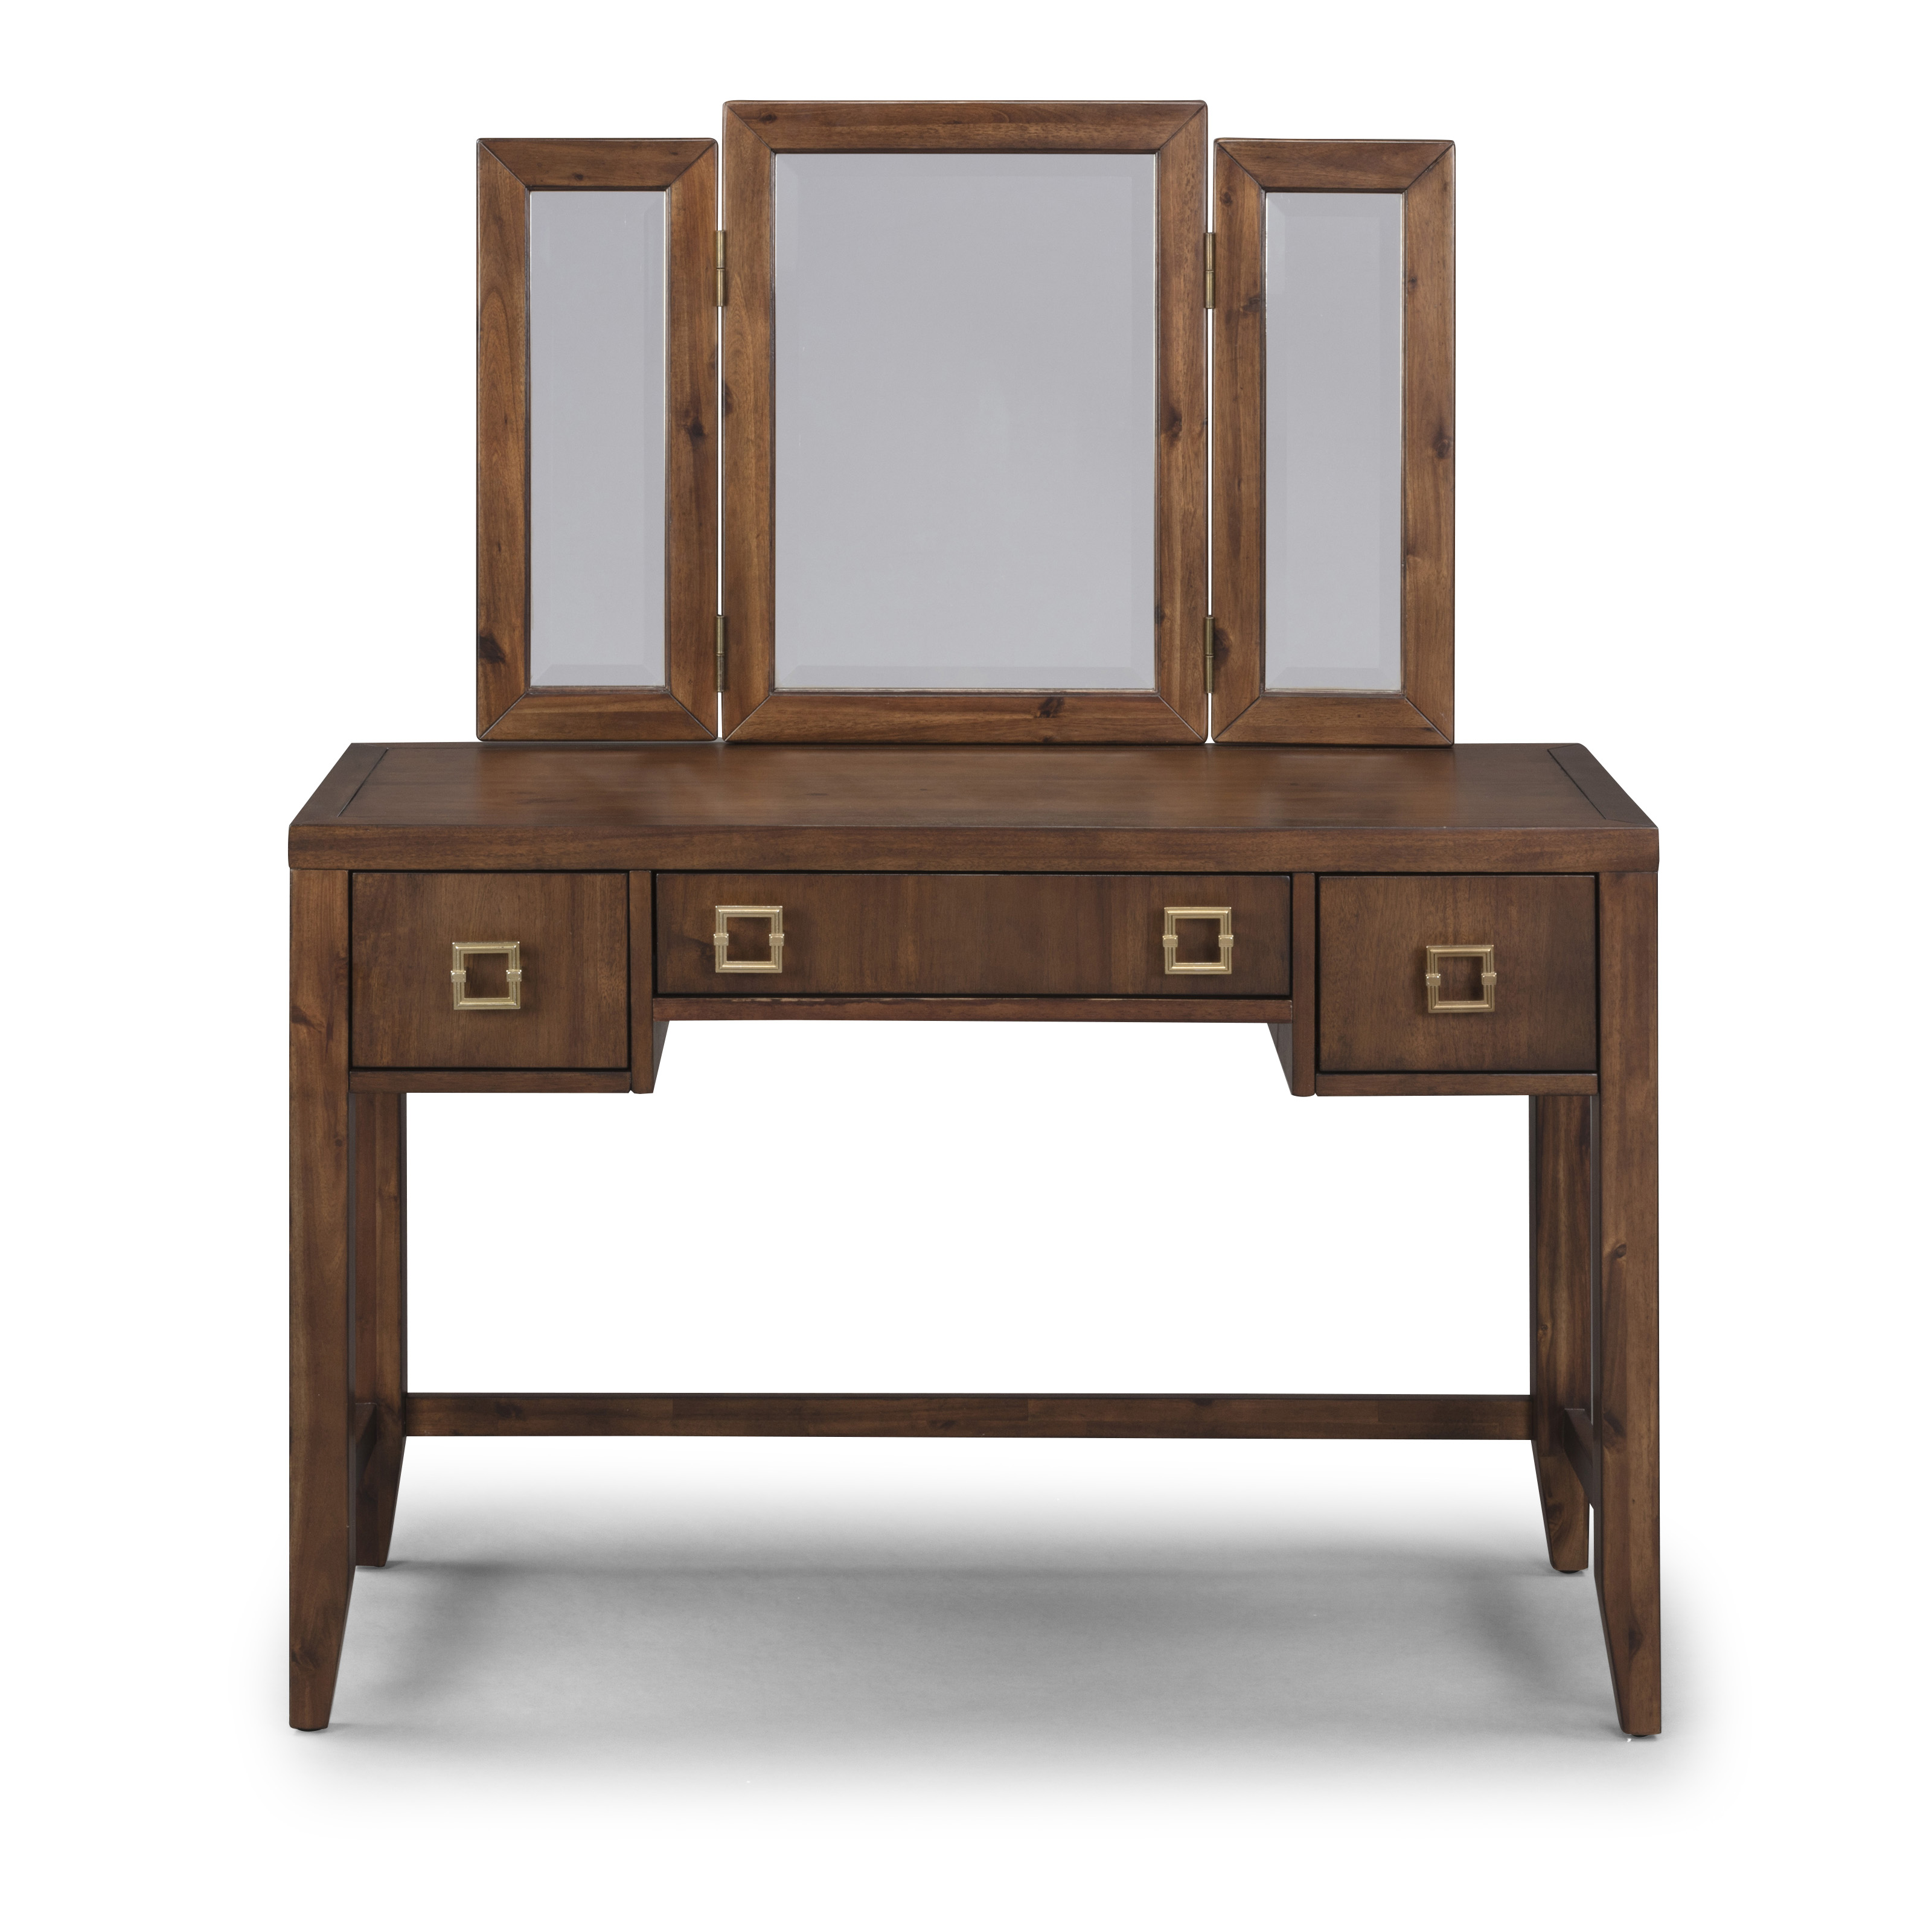 Bungalow Vanities/Vanity Sets by homestyles at Fisher Home Furnishings